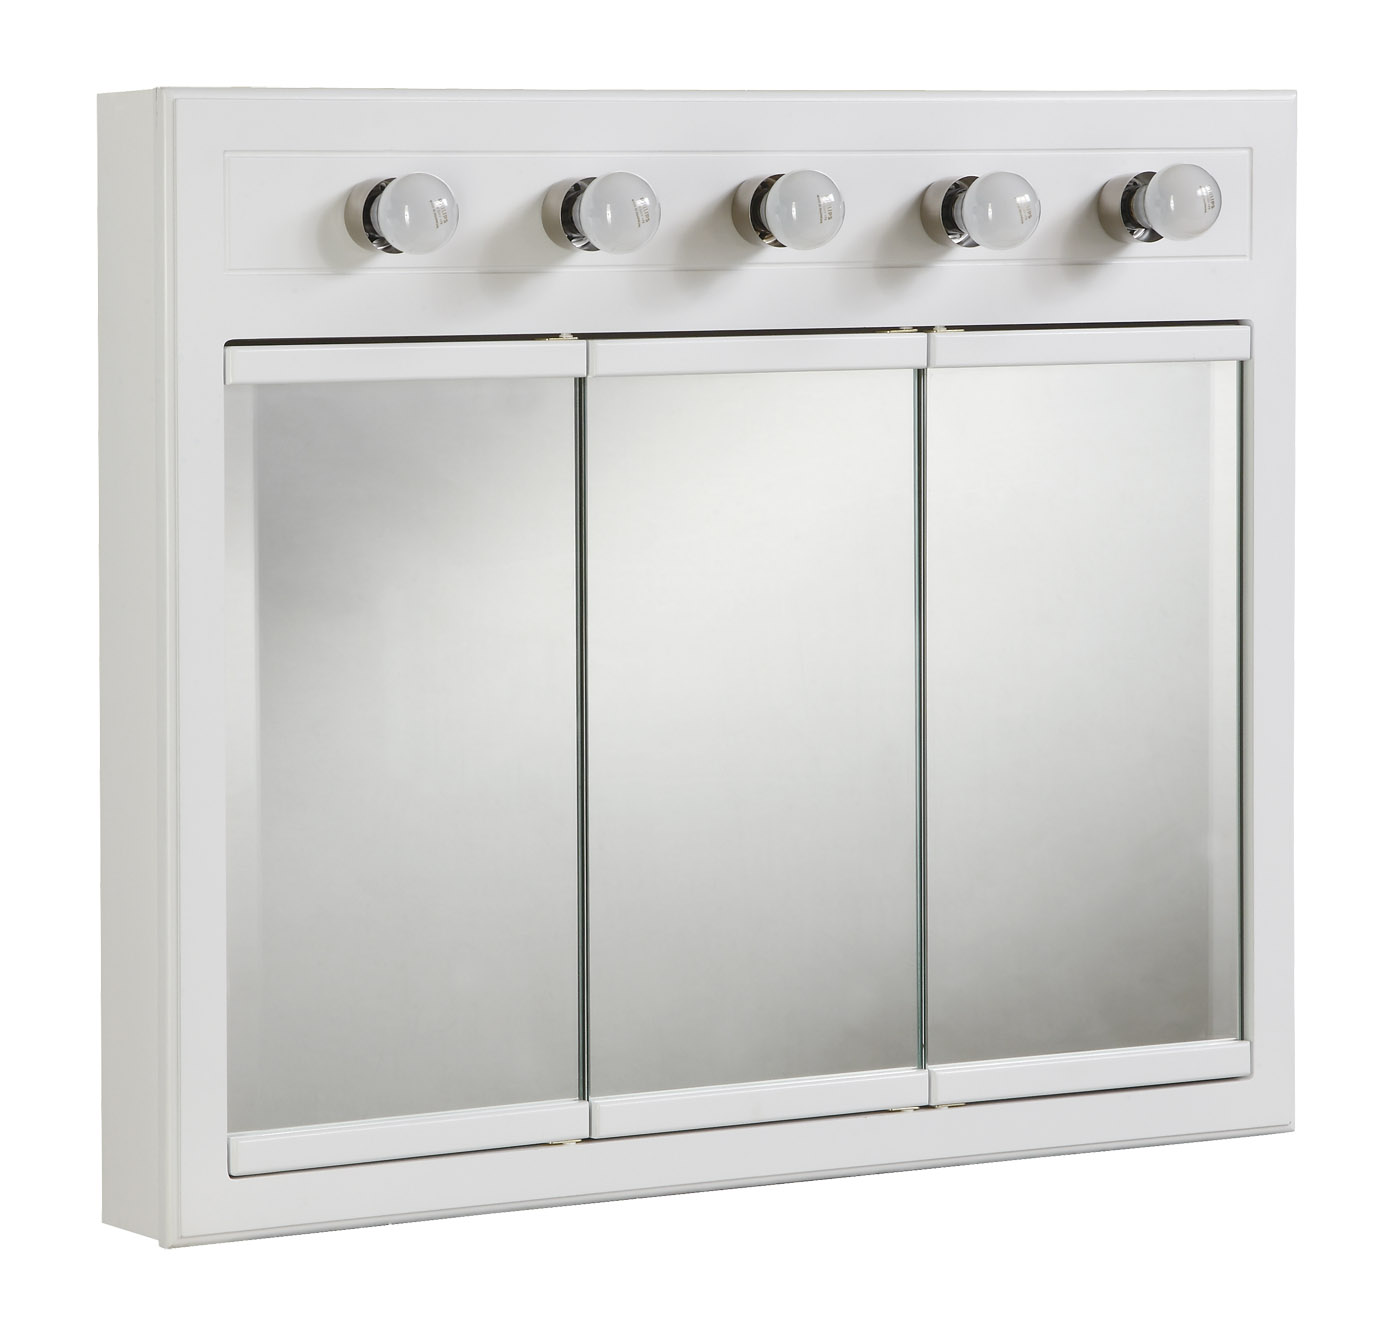 "Design House 532390 Concord Lighted 3-Door Medicine Cabinet Mirror 36"", White"